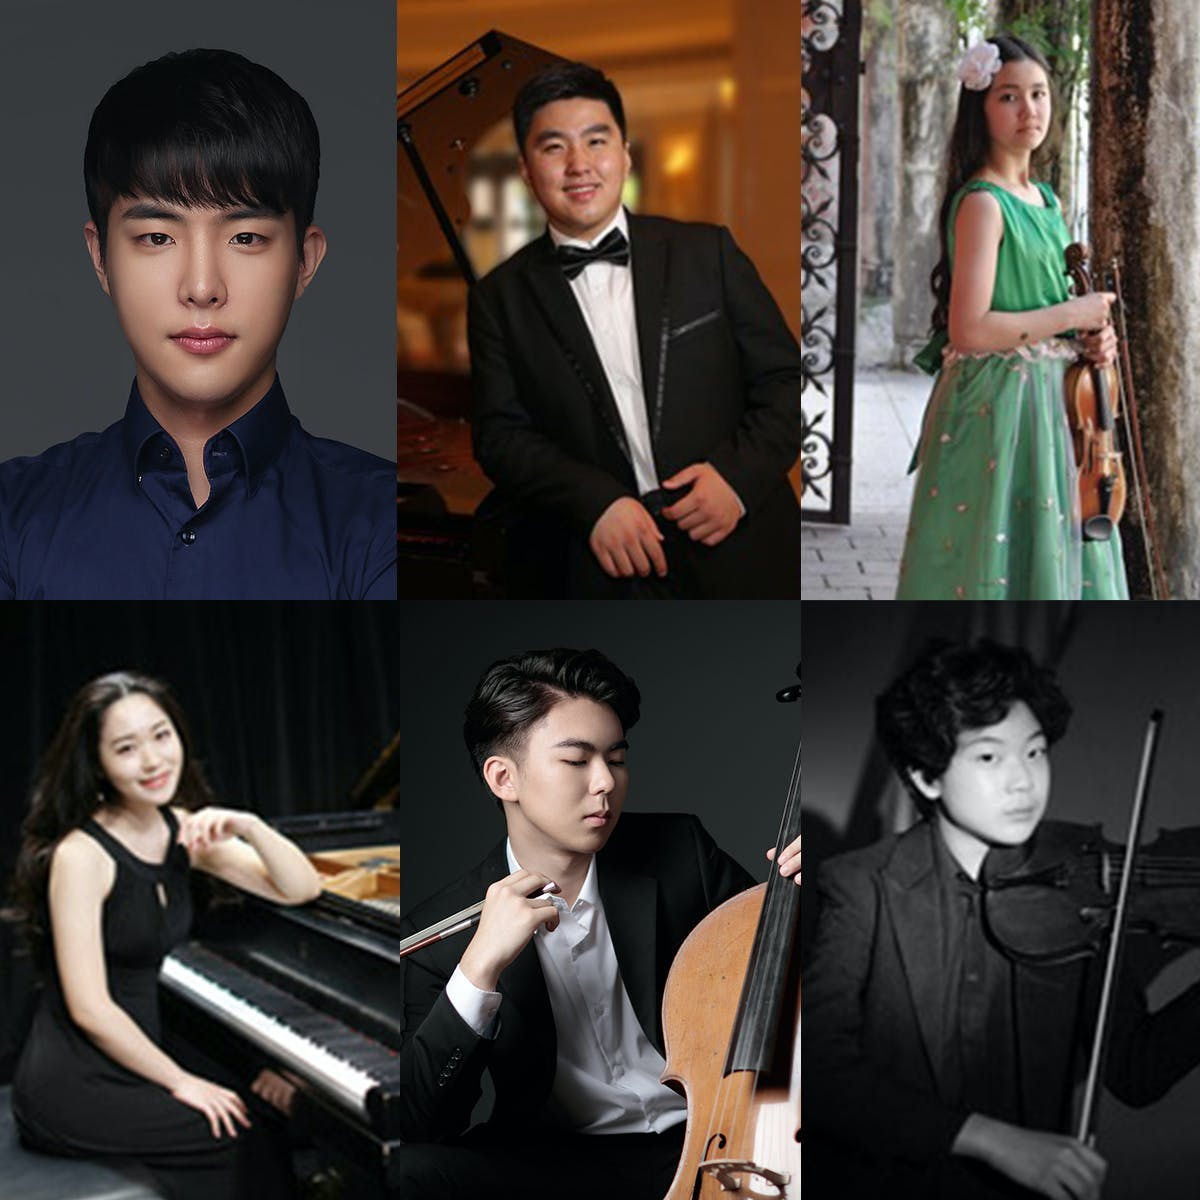 IMPORT 2018 New York International Artists Competition Winners Showcase; Chanyeong Yang, Piano, at Carnegie Hall